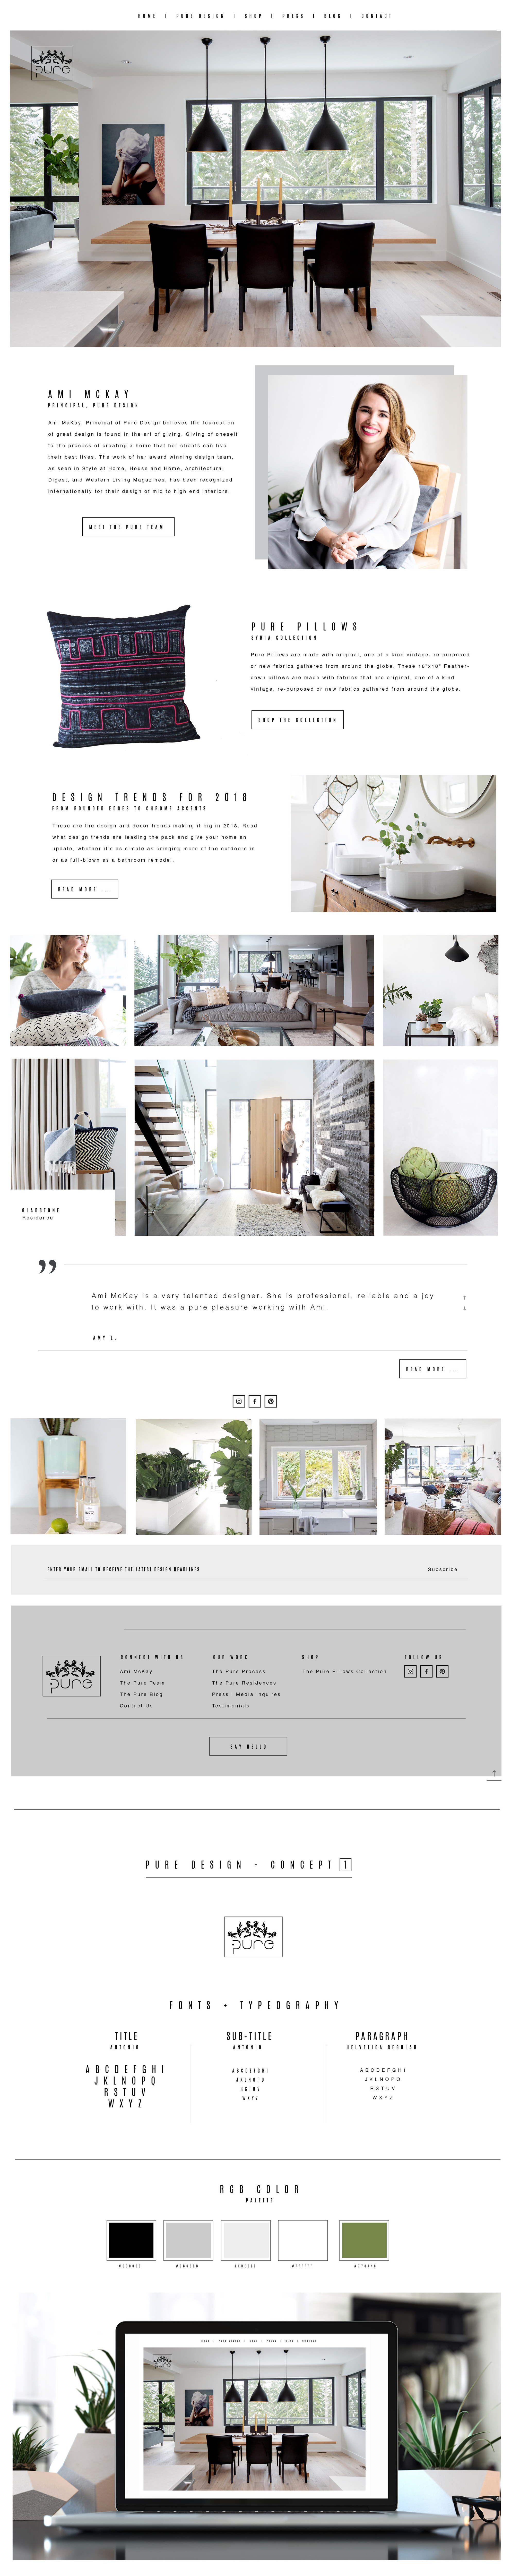 pure-design-website-concept1